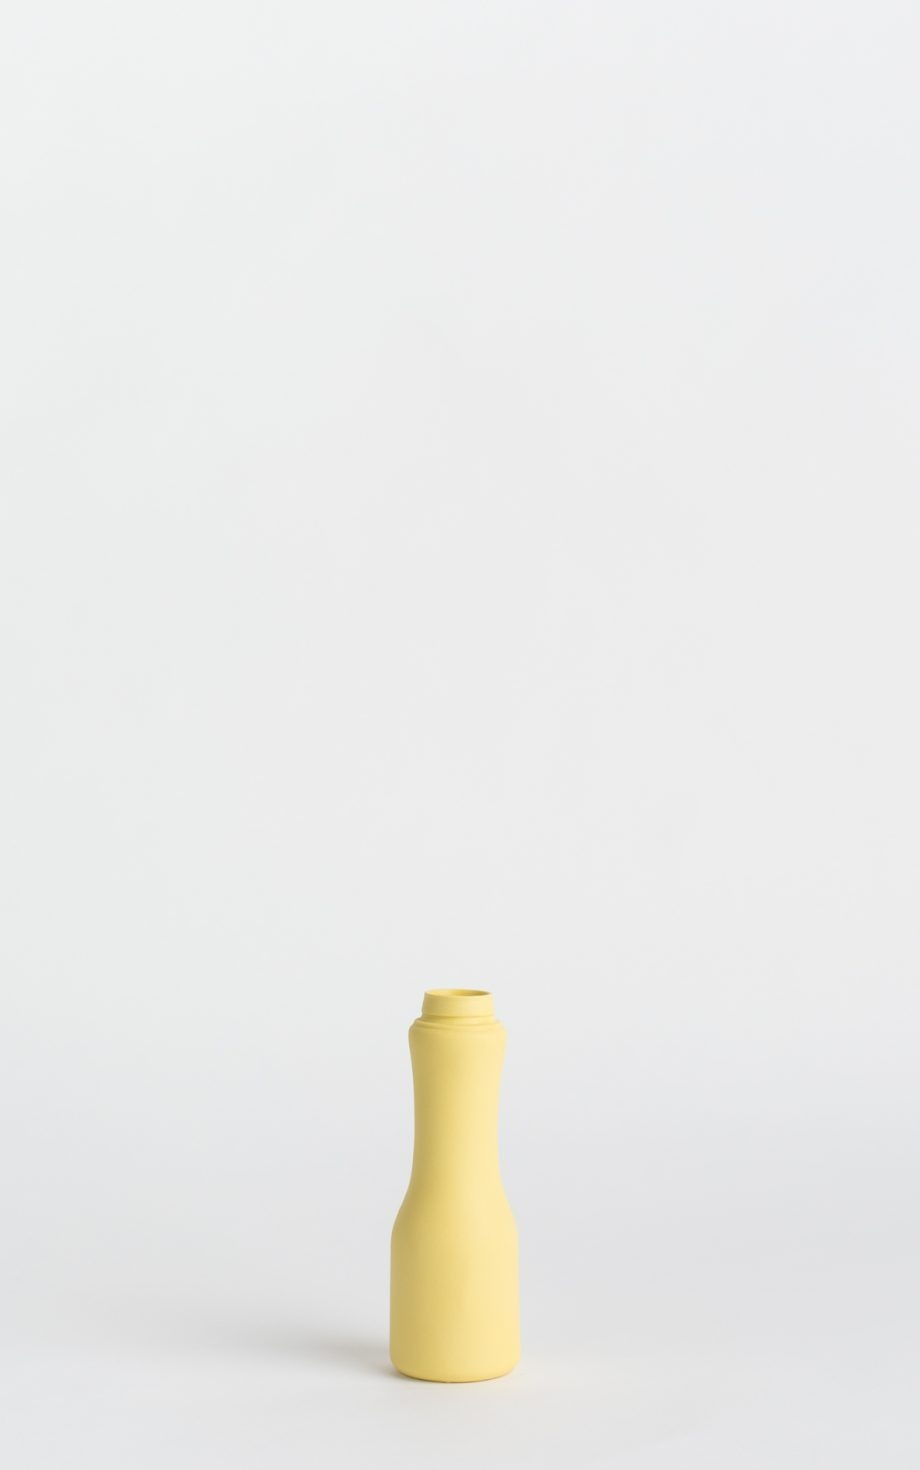 bottle vase #6 warm yellow